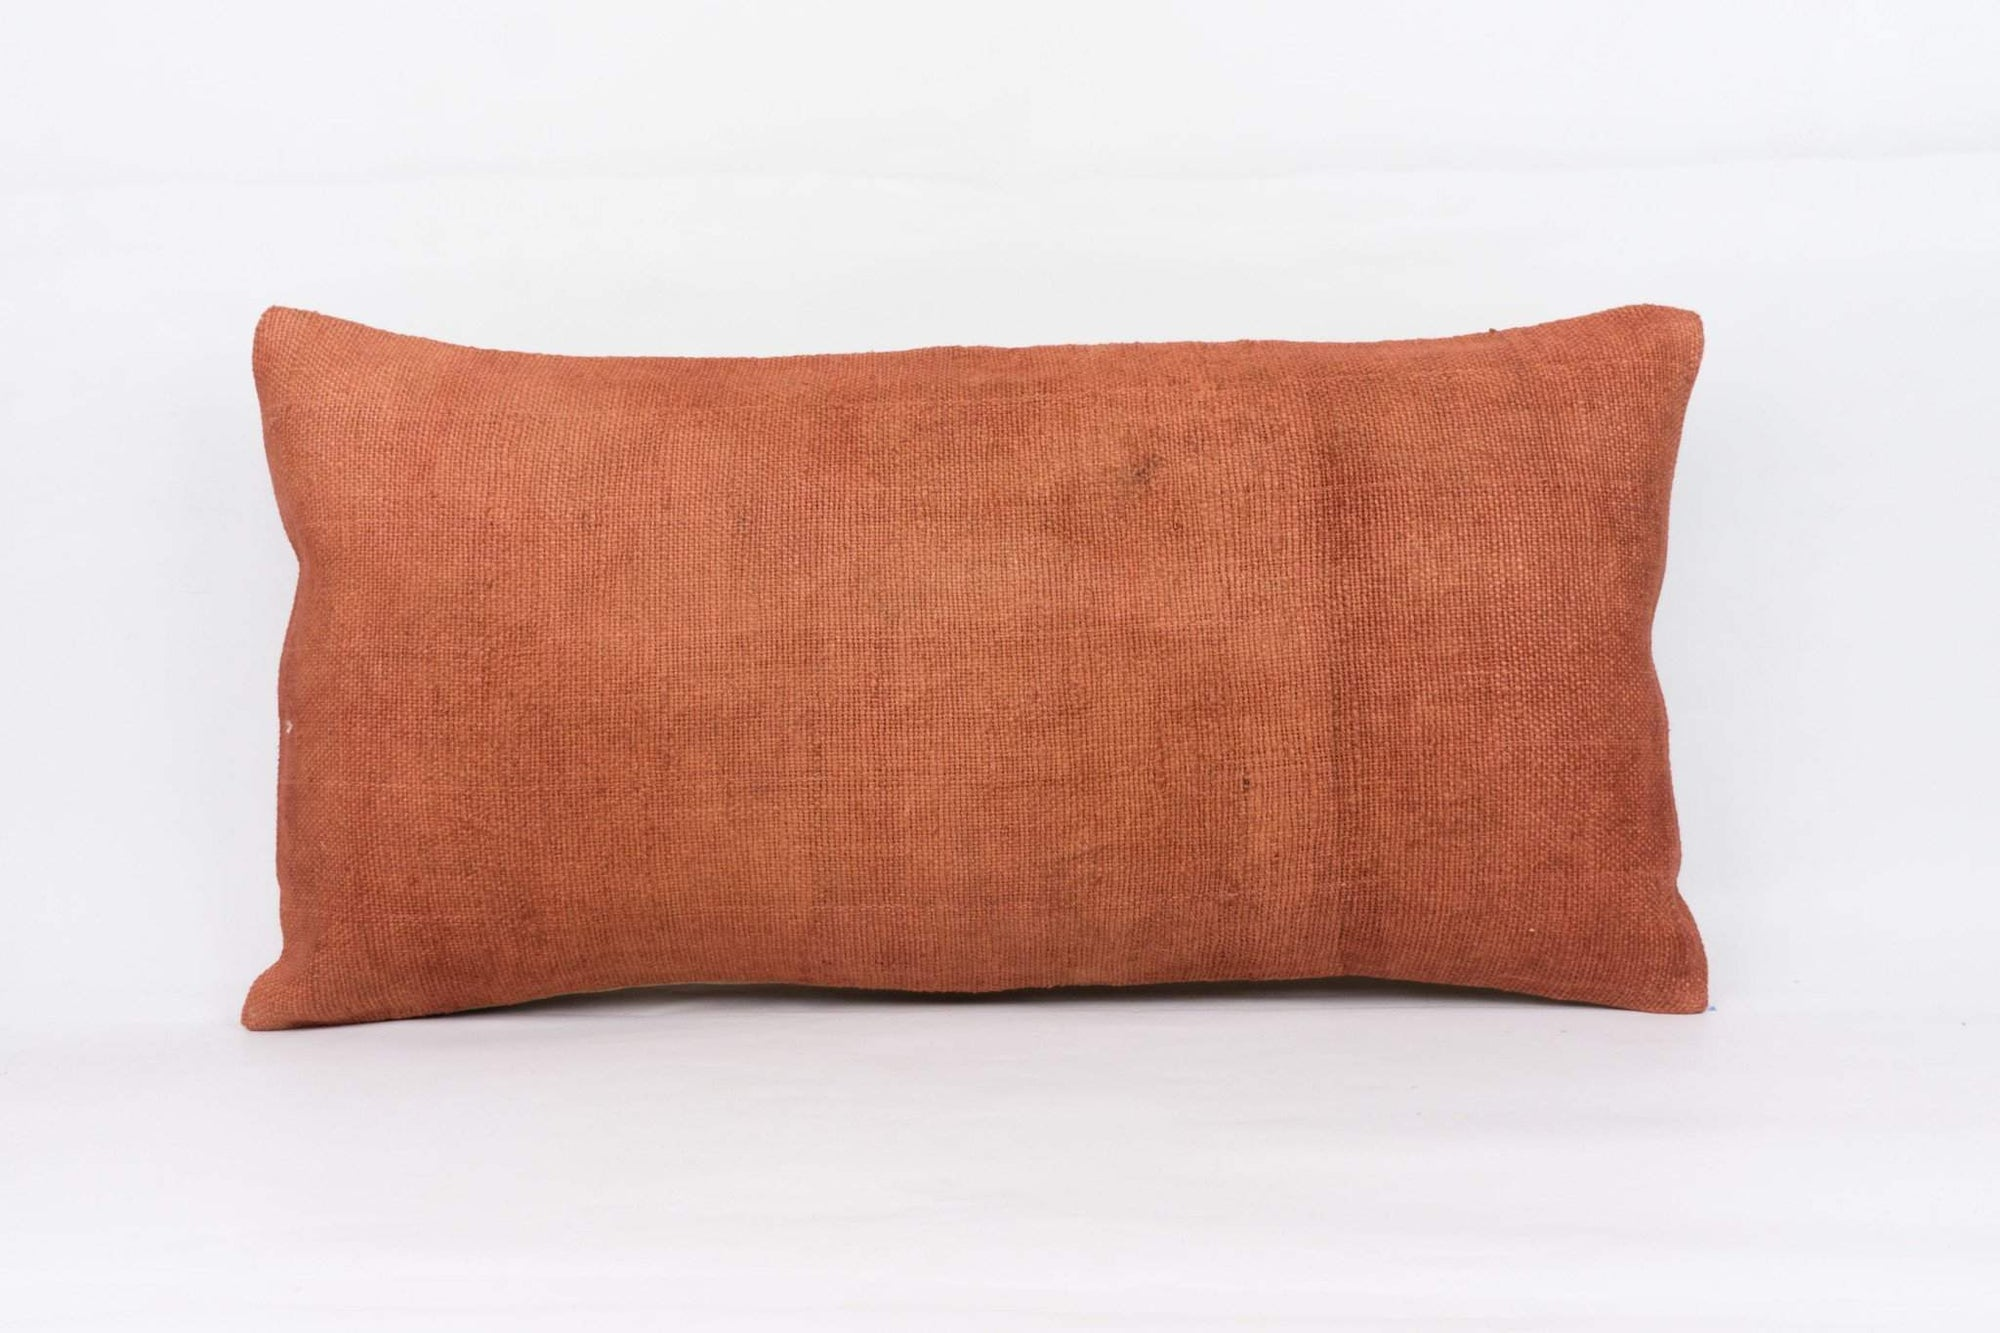 Plain Brown Kilim Pillow Cover 12x24 4195 - kilimpillowstore  - 1